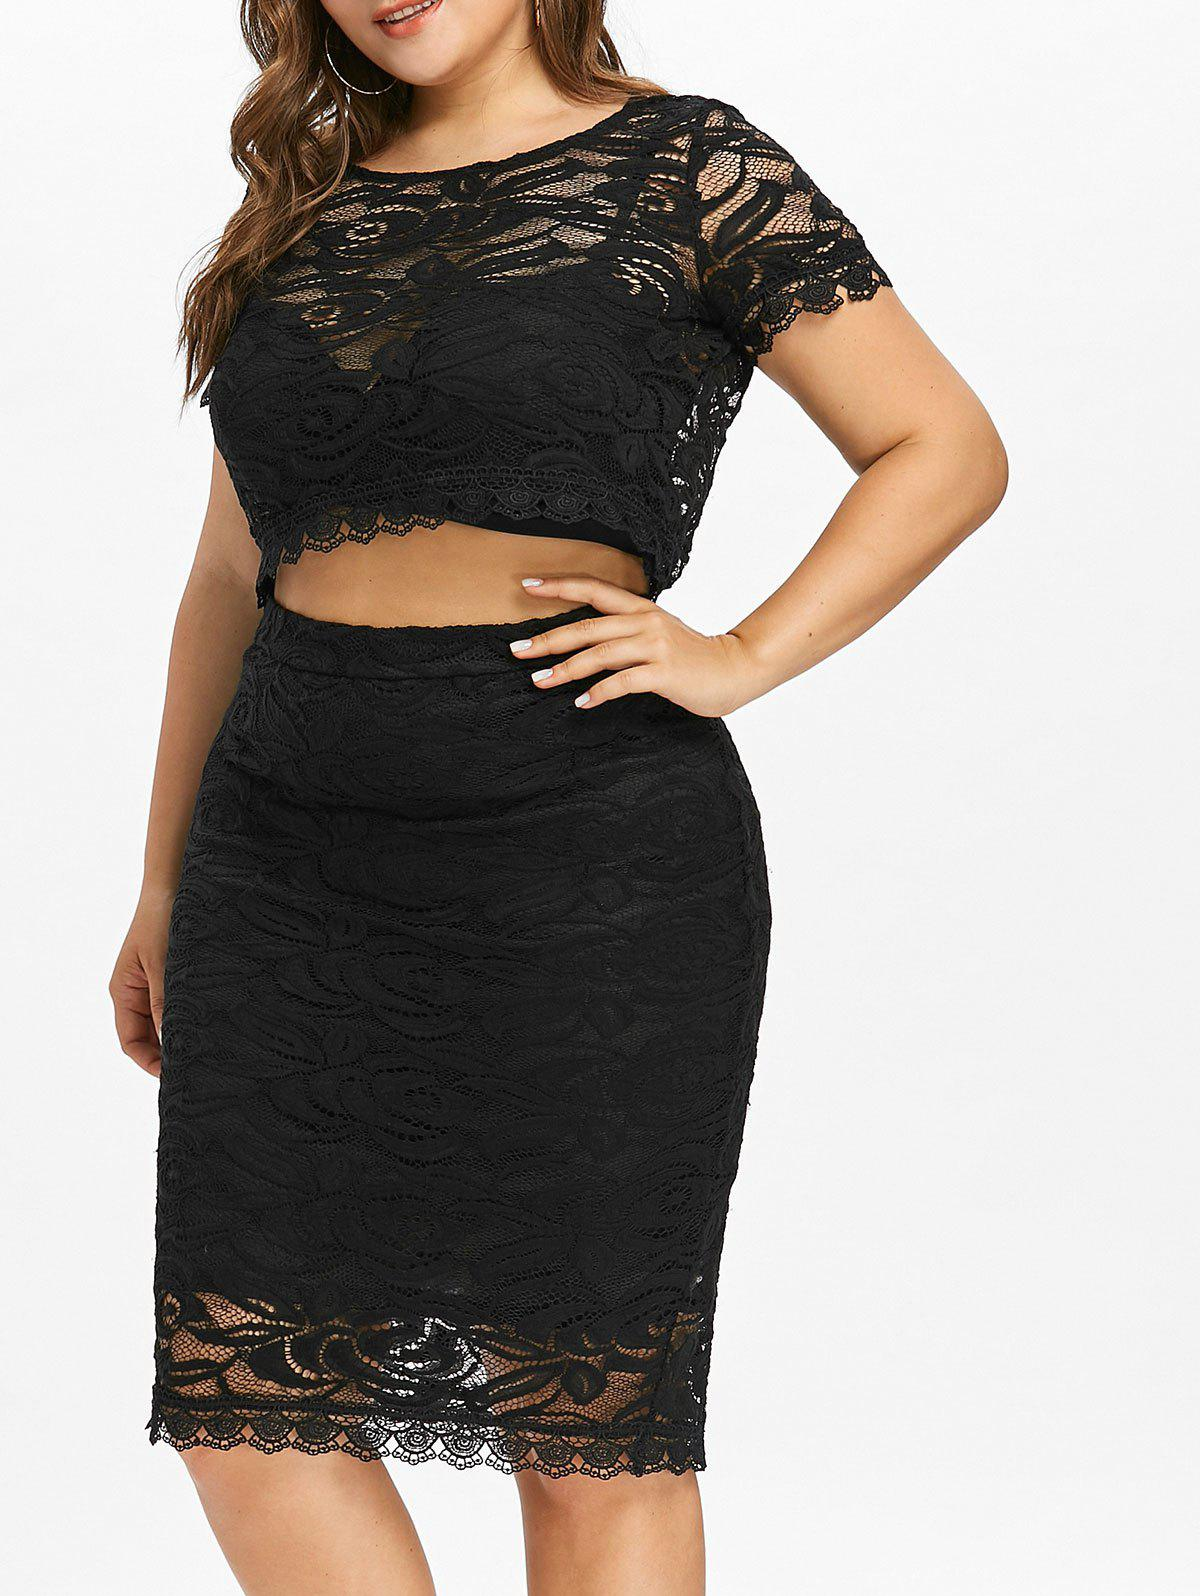 Plus Size Short Sleeve Two Piece Lace Dress - BLACK 2XL